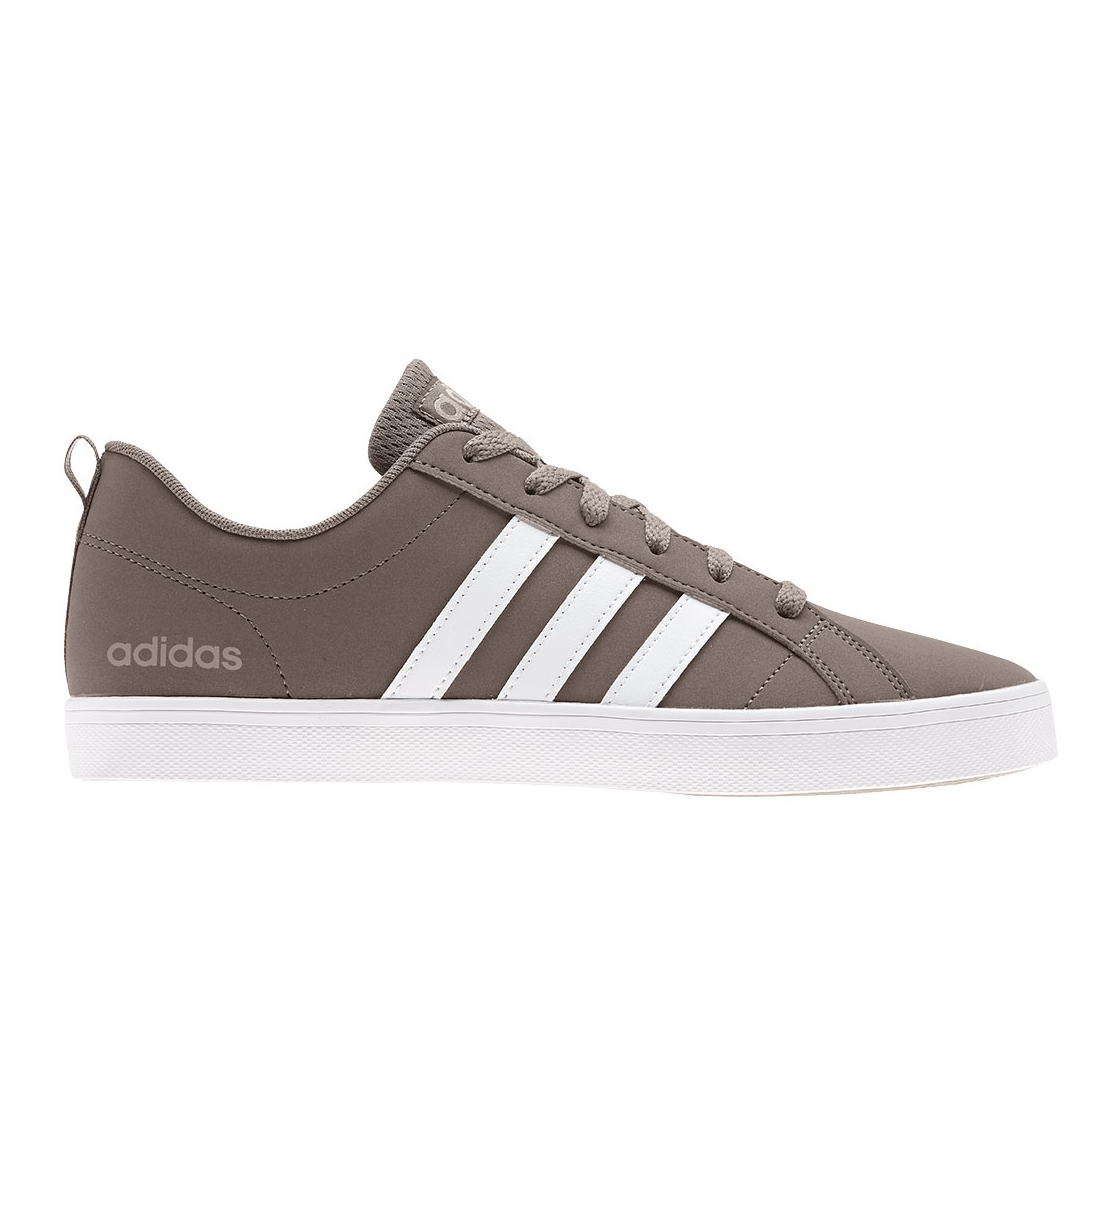 adidas Ανδρικό Παπούτσι Μόδας Fw20 Vs Pace EF2343